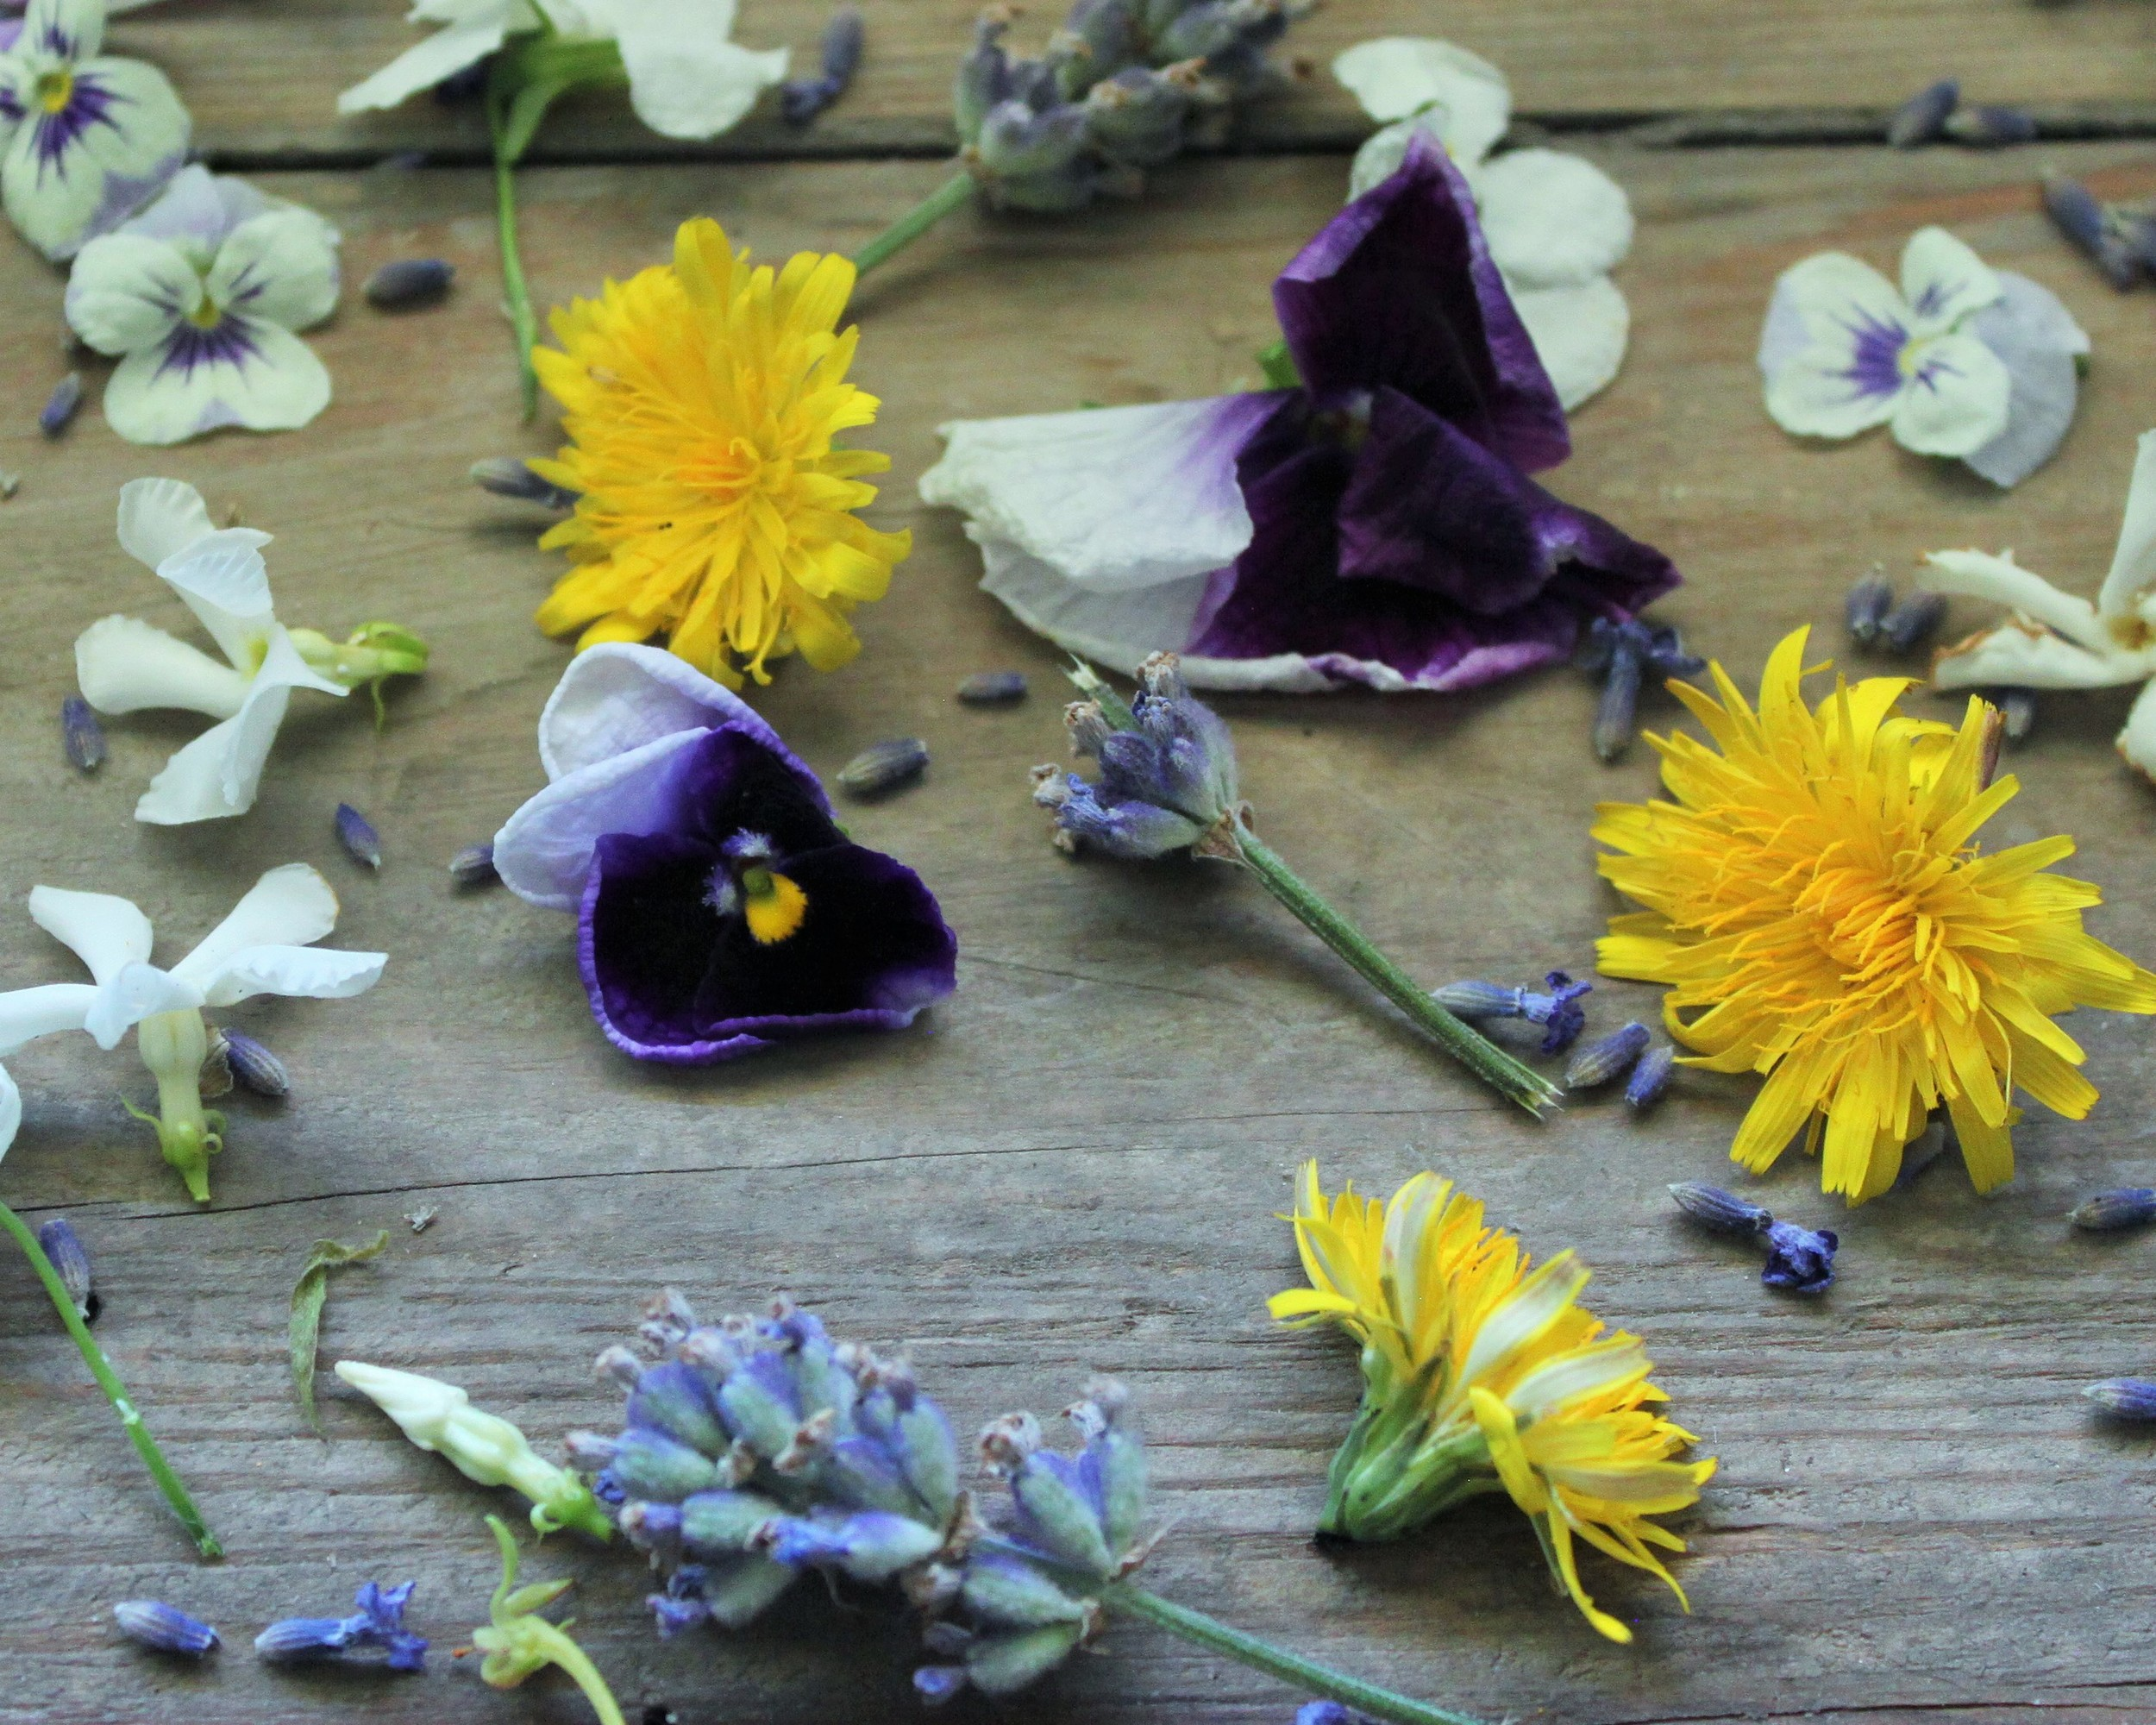 Real Edible Flowers For Cake Decorating  from images.squarespace-cdn.com